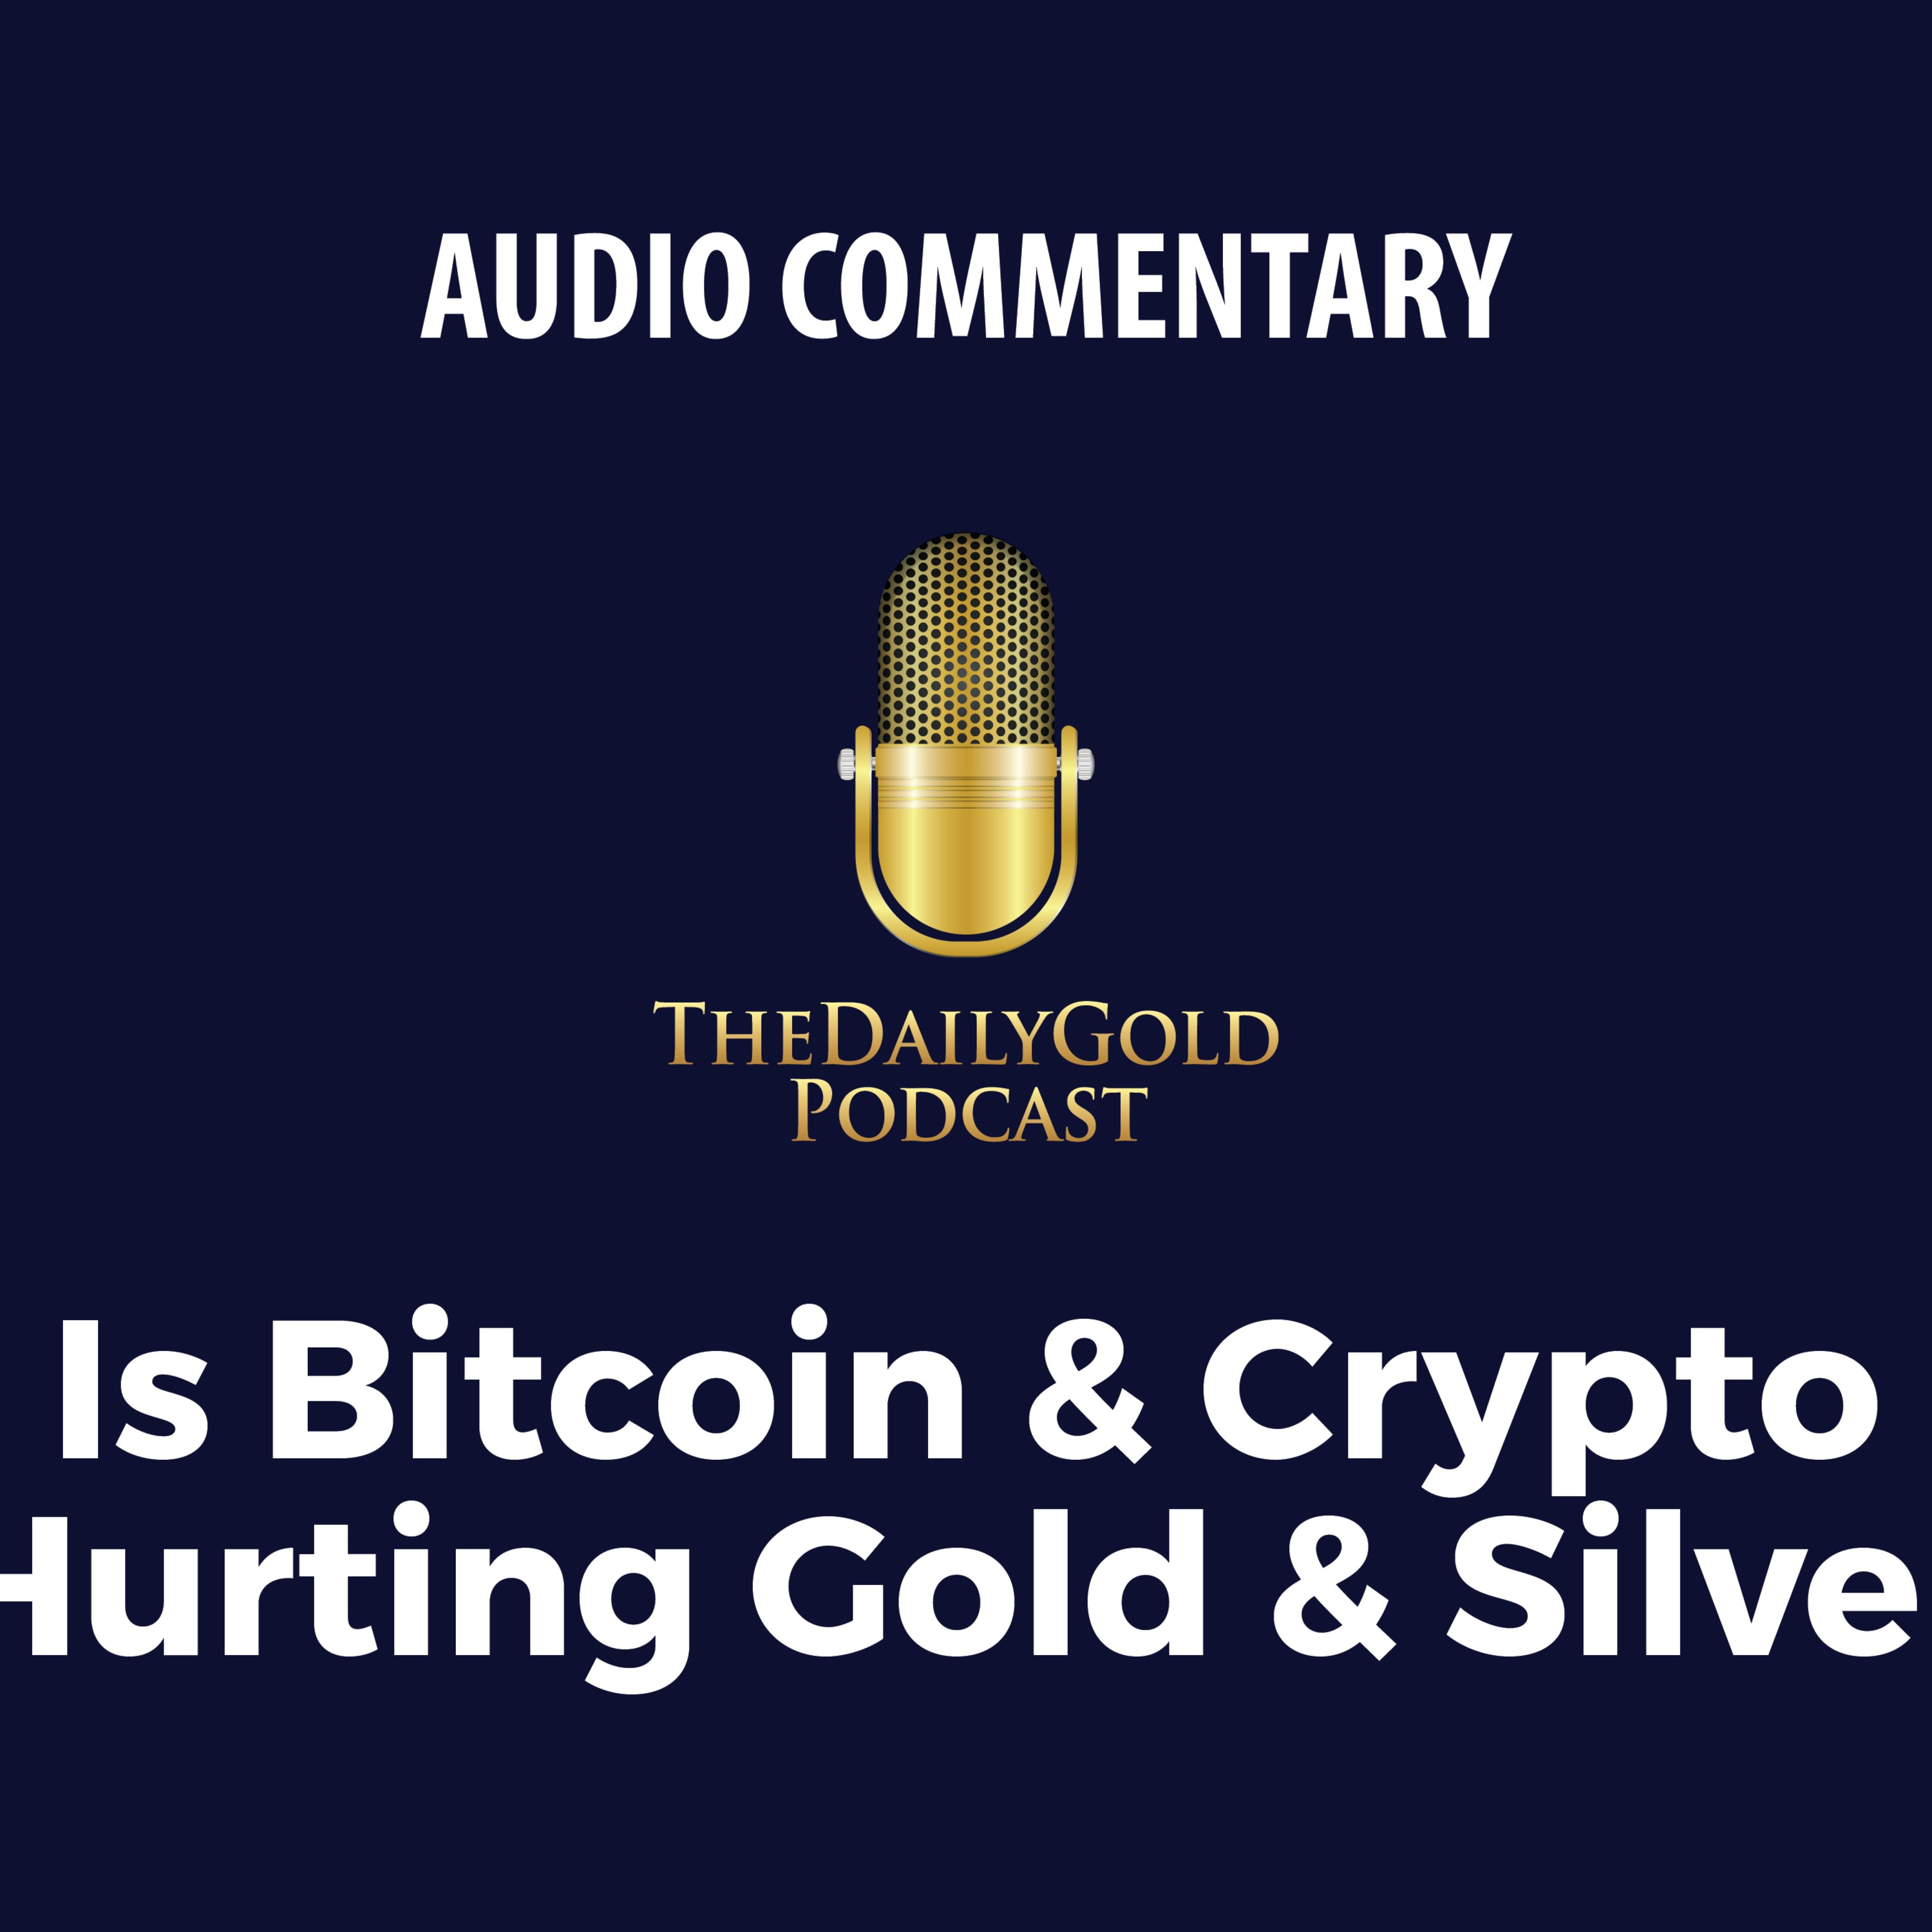 Is Bitcoin & Crypto Hurting Gold